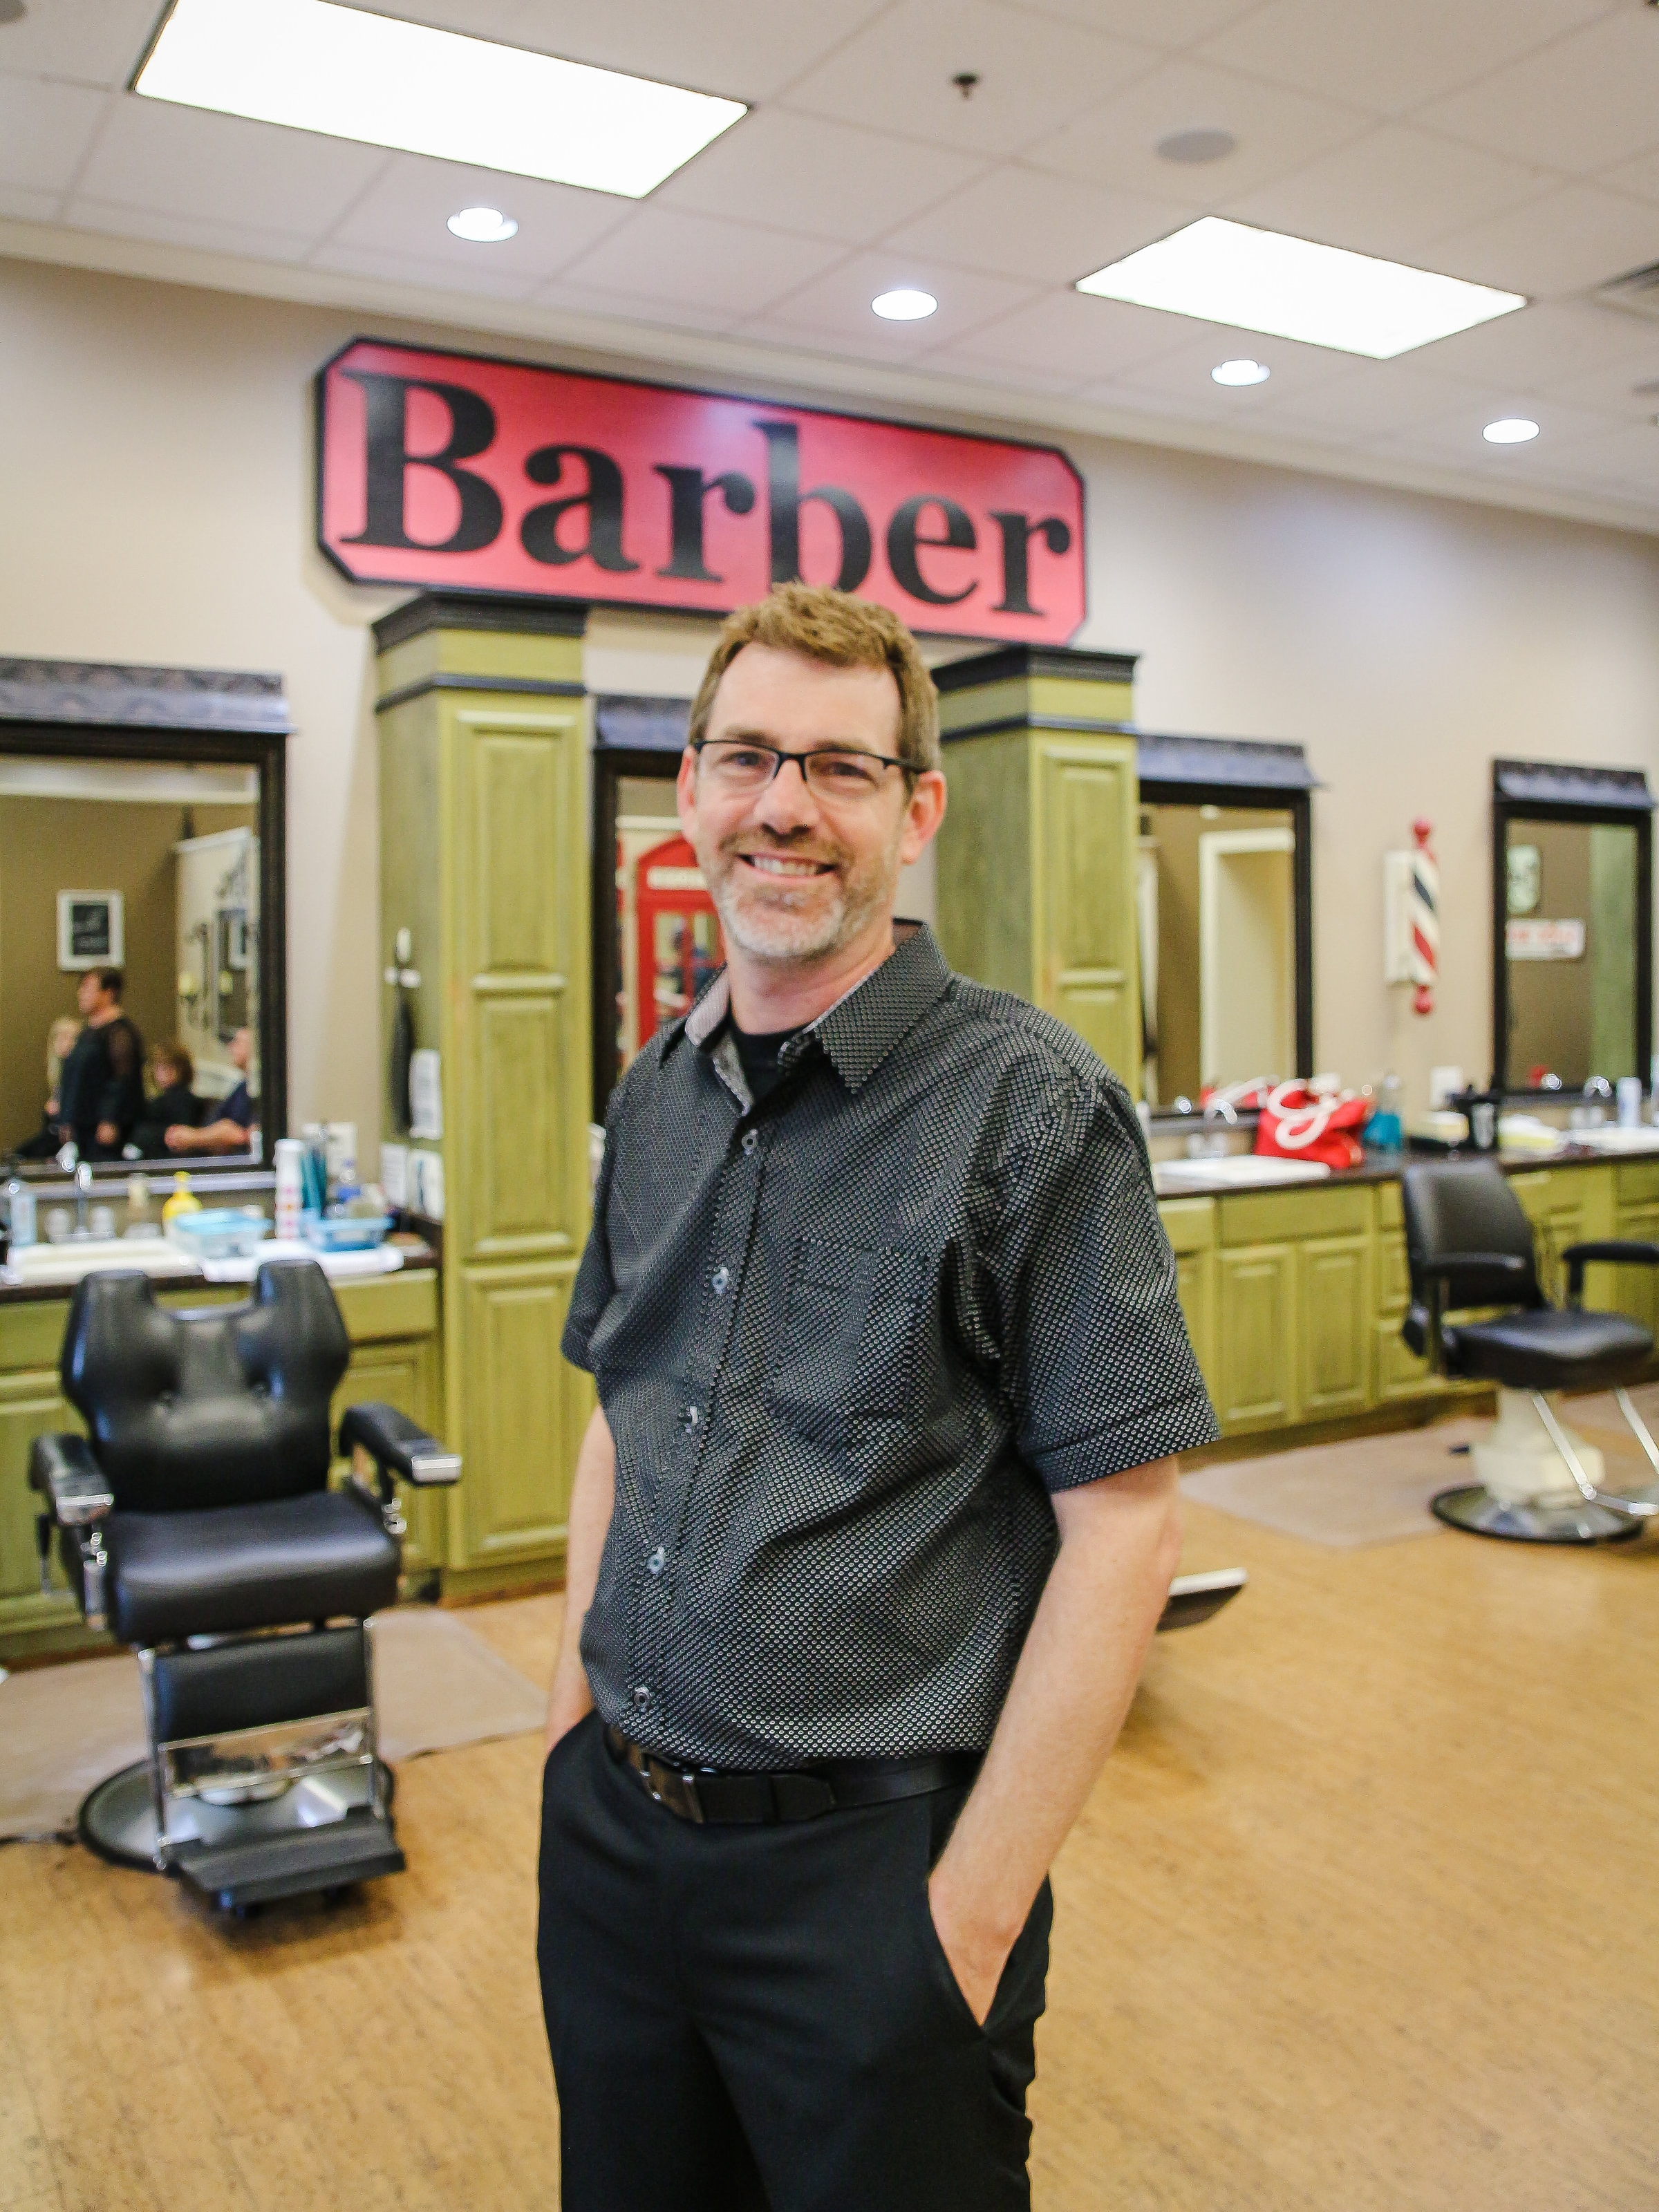 William - Barber, Stylist, Co-Owner  Location : Alps Village Shopping Center  Work Schedule : Mon, Tues, Wed, Fri, Sat